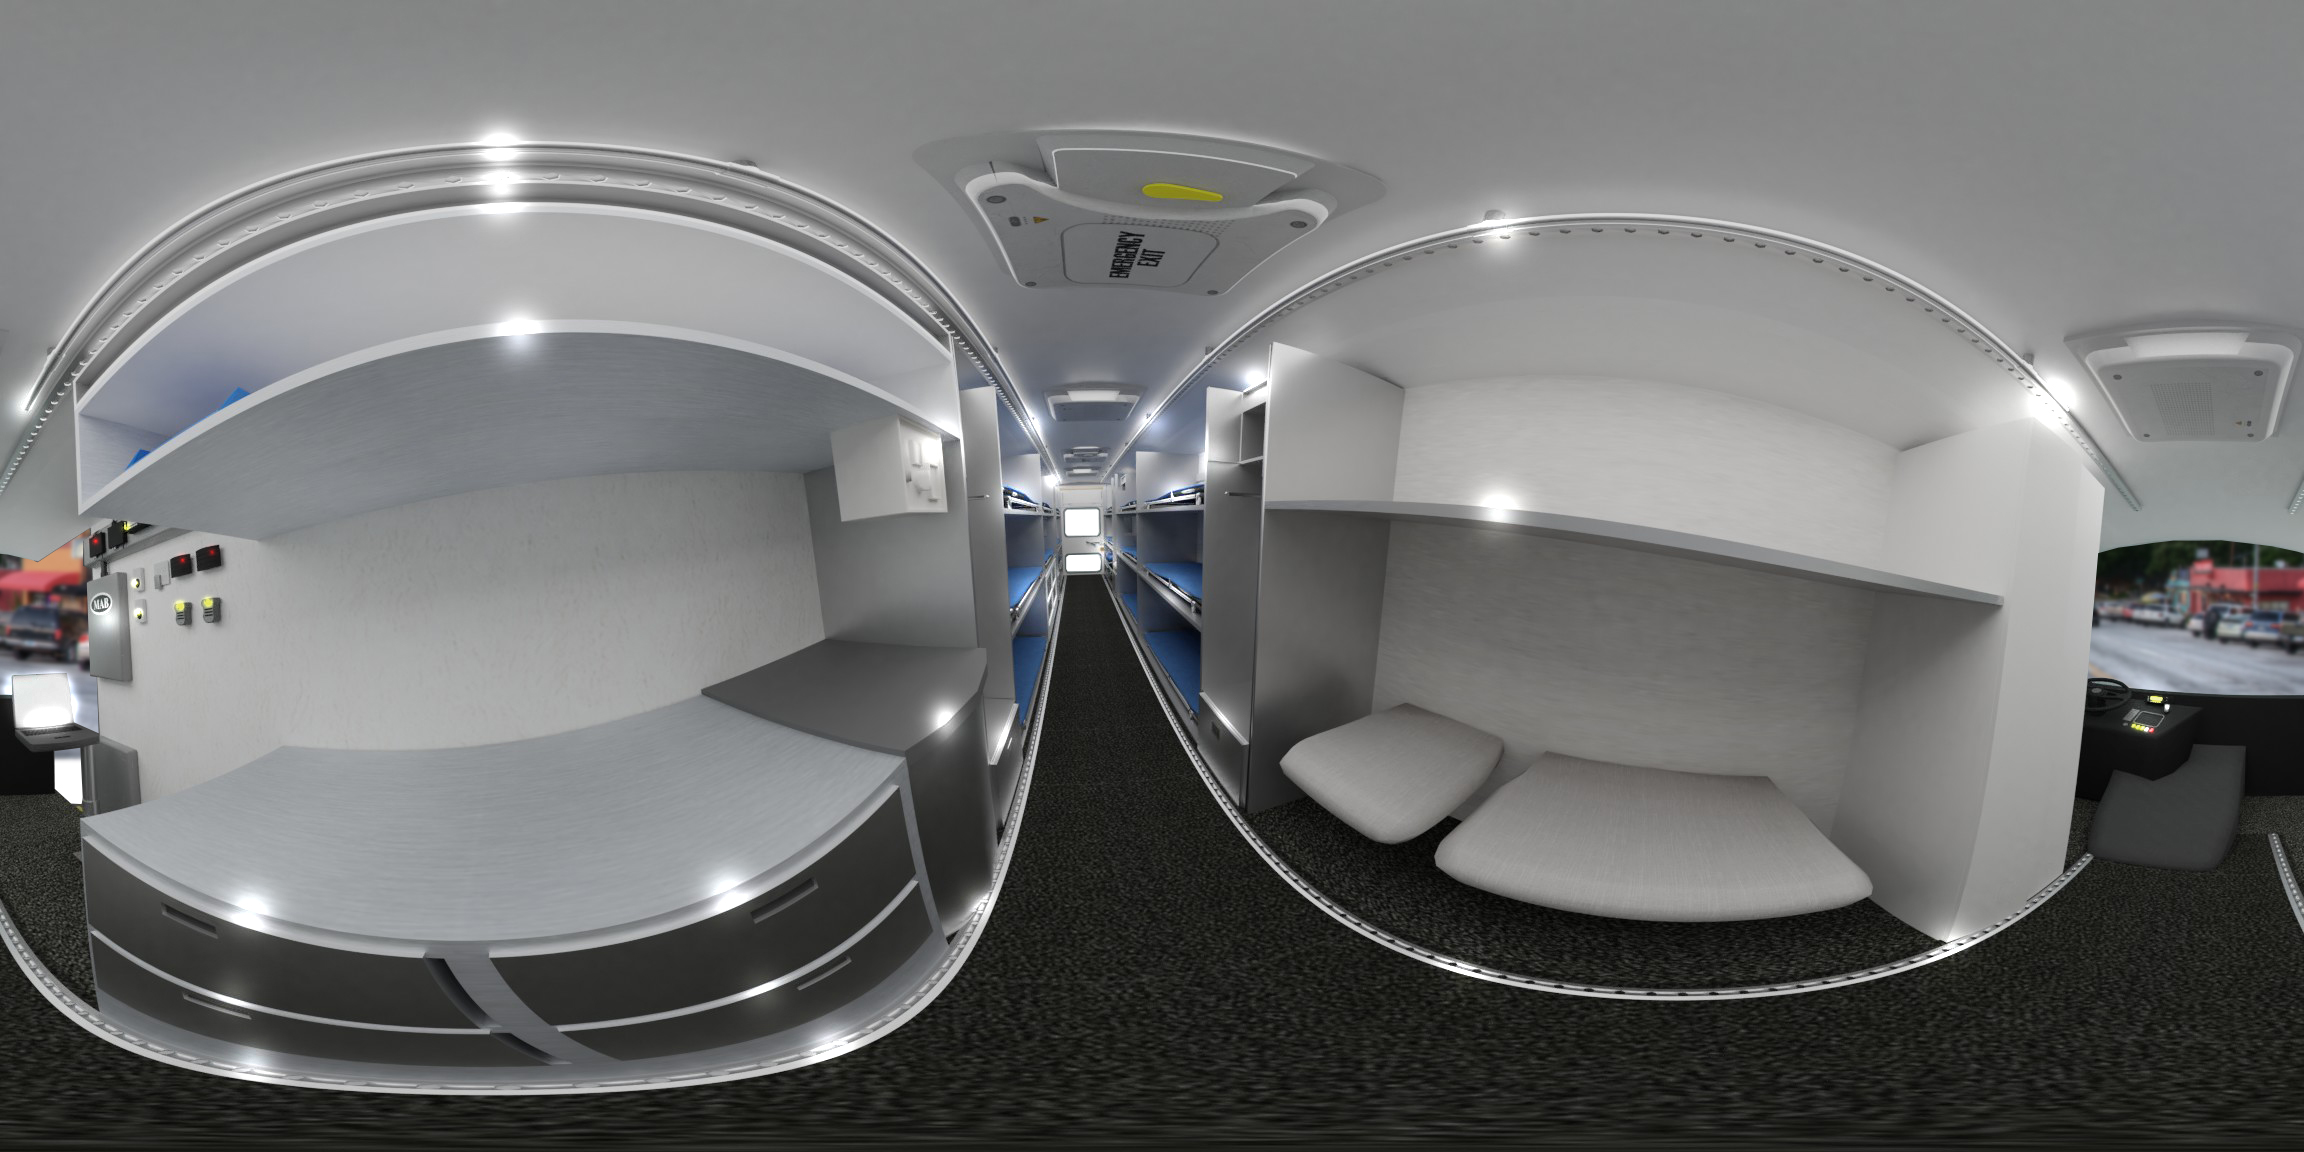 360 view of the ambus interior